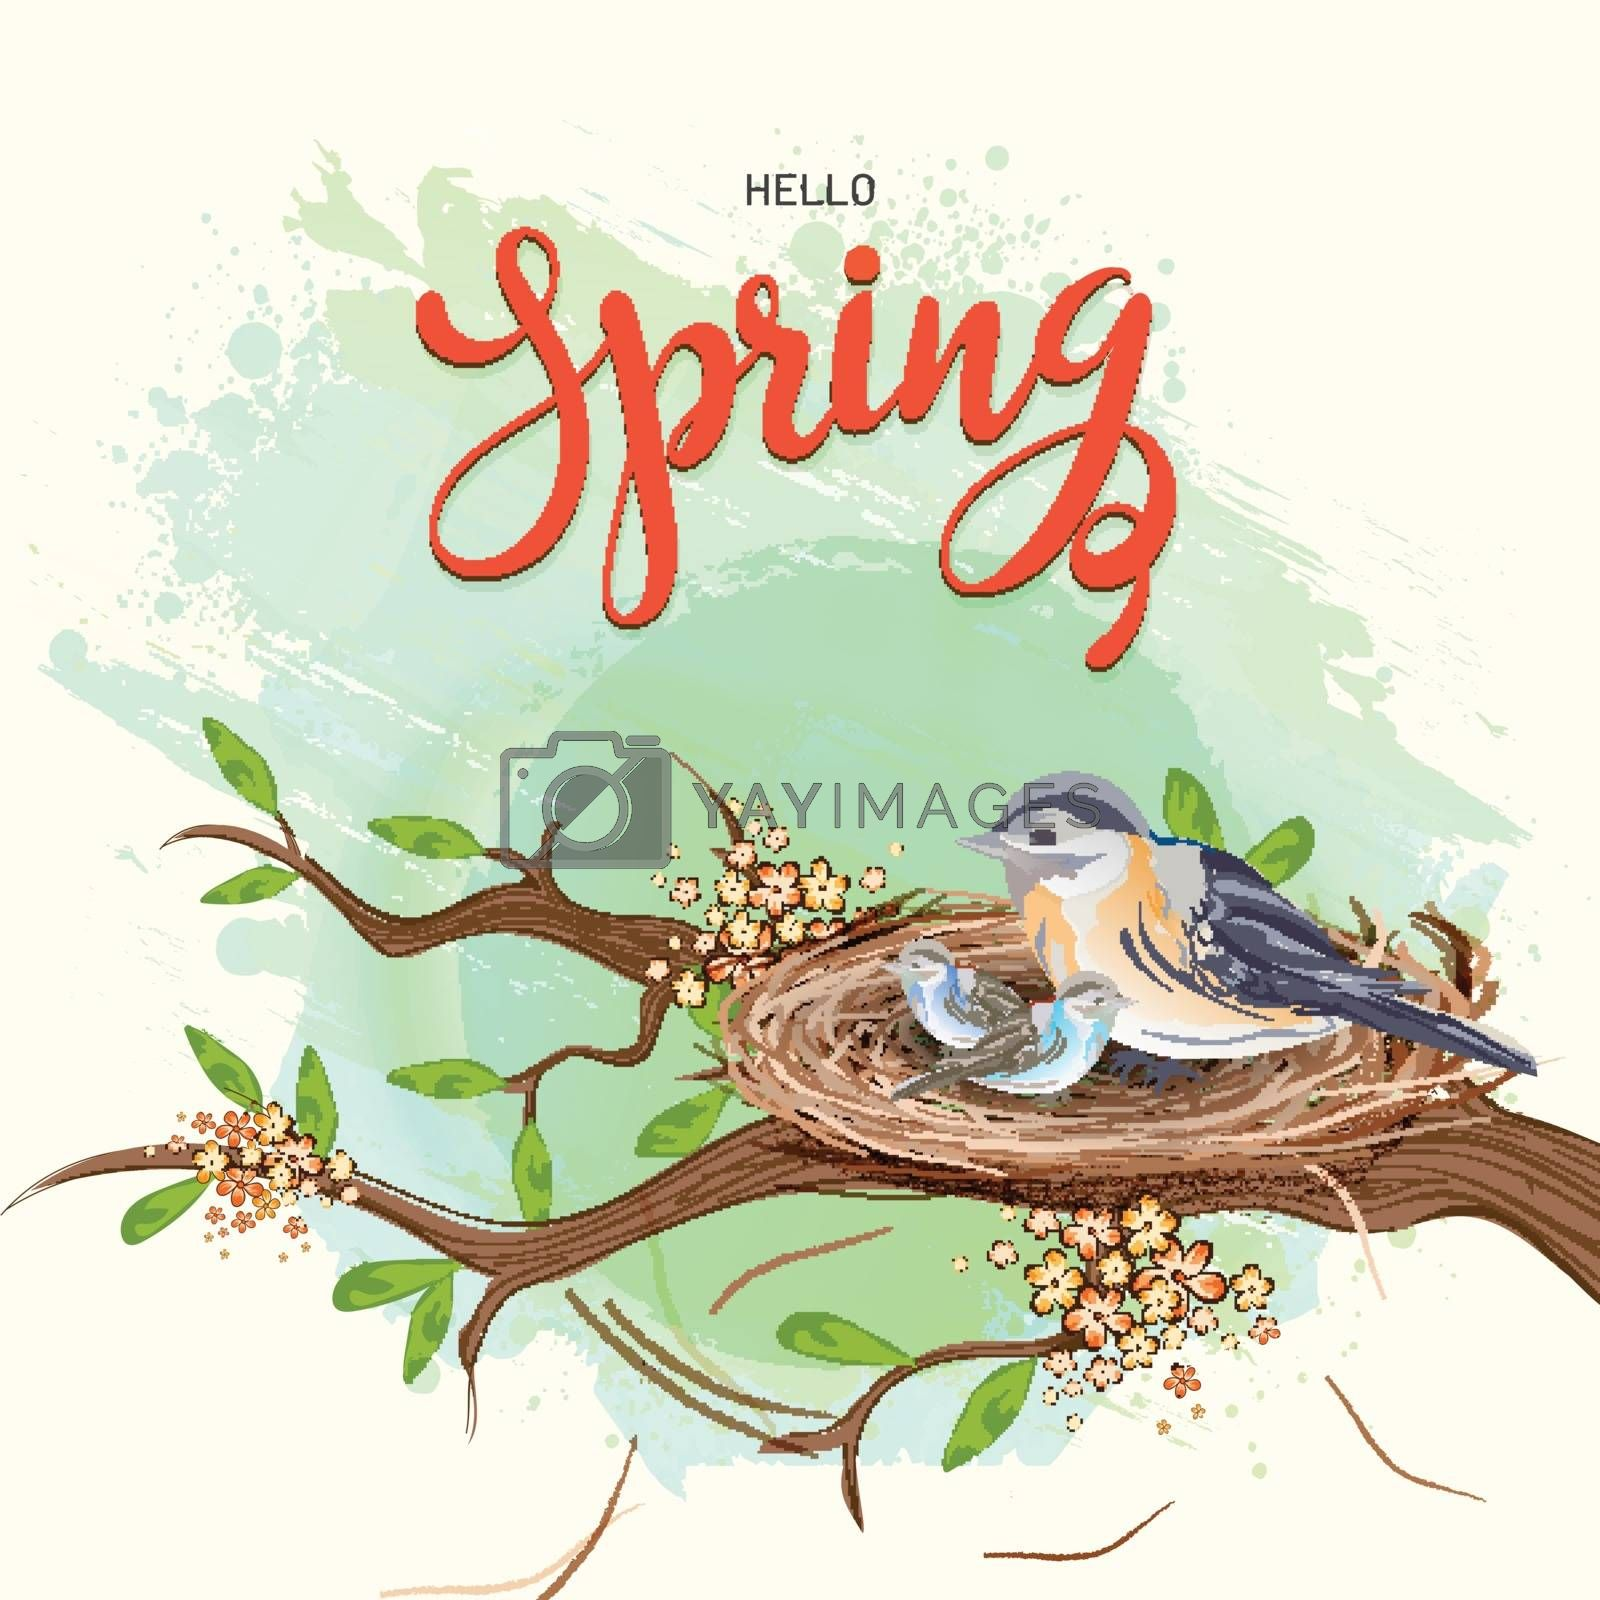 Royalty free image of Hello Spring template or greeting card design with illustration  by aispl